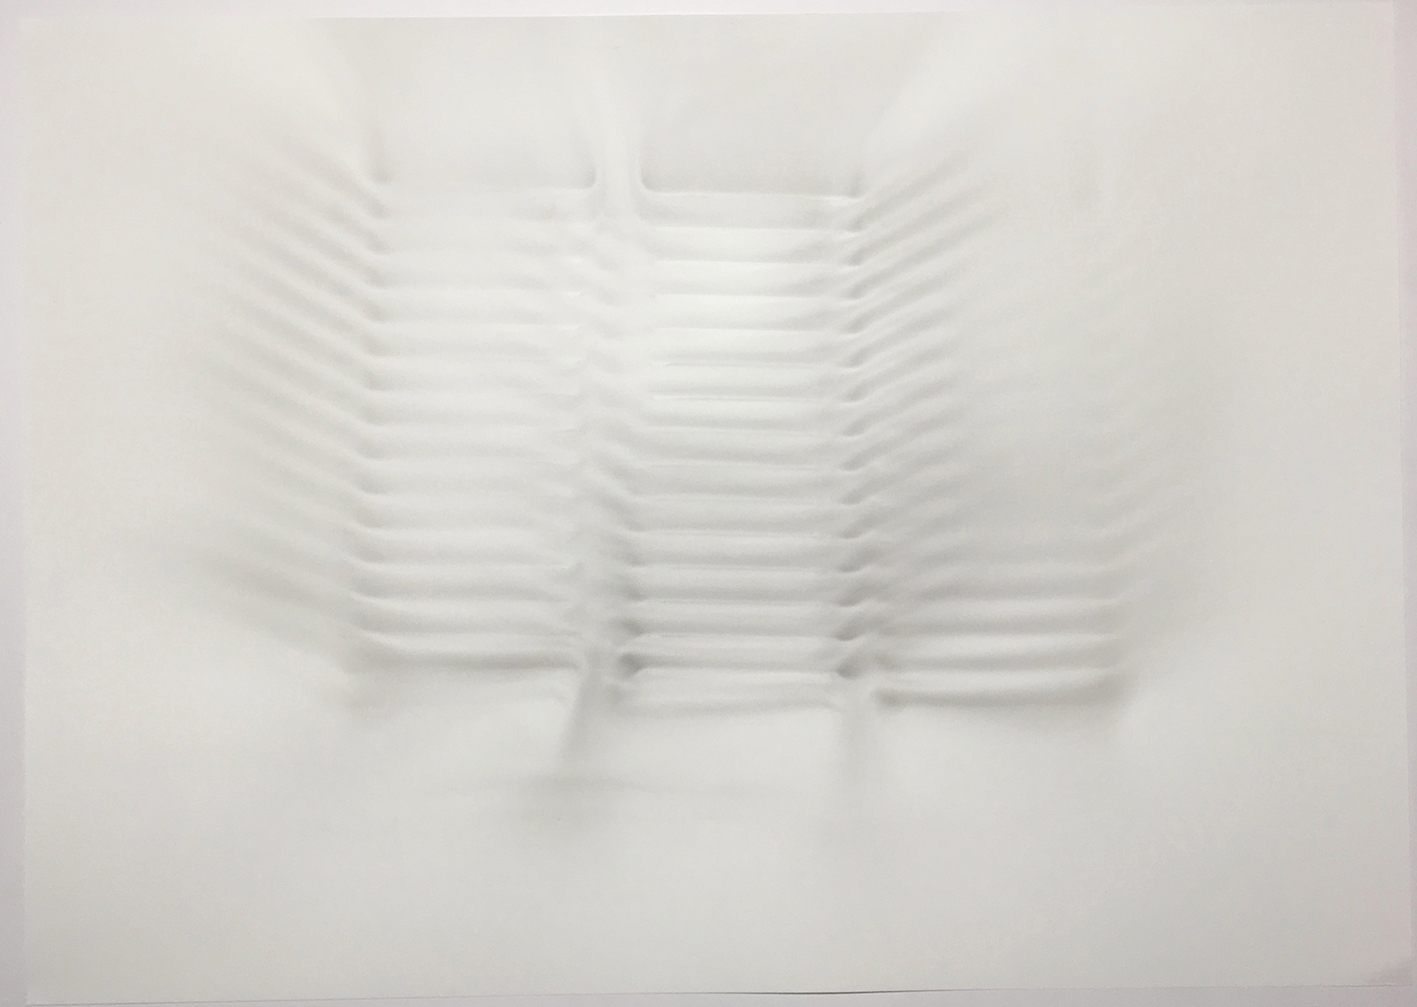 Mikhail Tolmachev - Untitled (ventilation), 2018